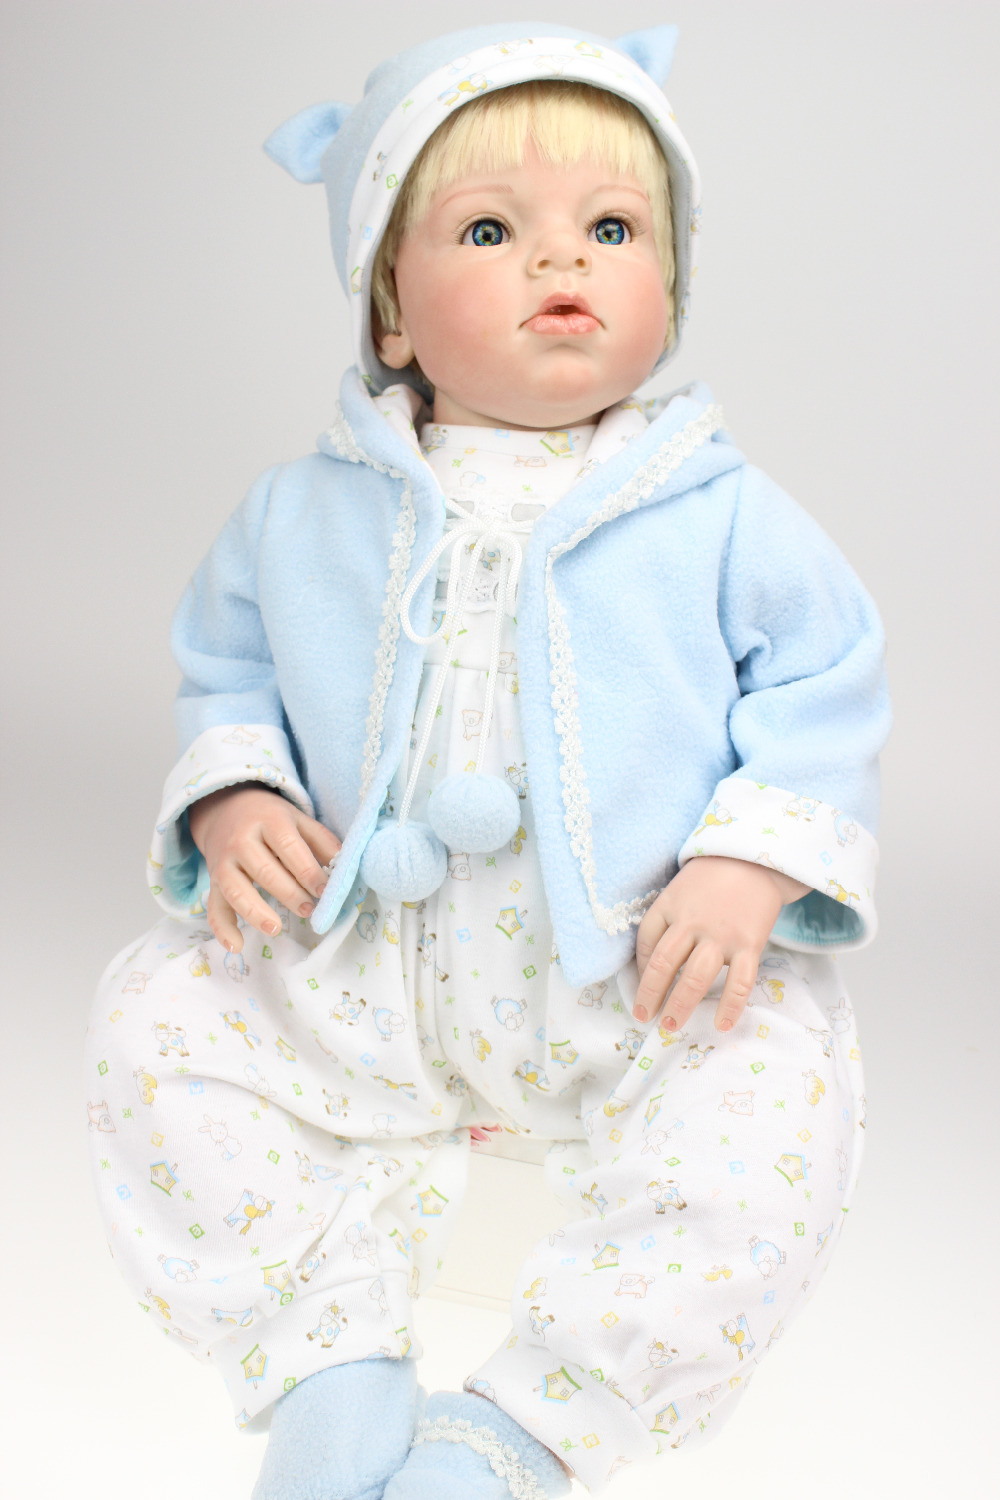 NEW hotsale lifelike reborn toddler doll  wholesale baby dolls fashion doll Gentle real touch doll,Arianna by RevNEW hotsale lifelike reborn toddler doll  wholesale baby dolls fashion doll Gentle real touch doll,Arianna by Rev